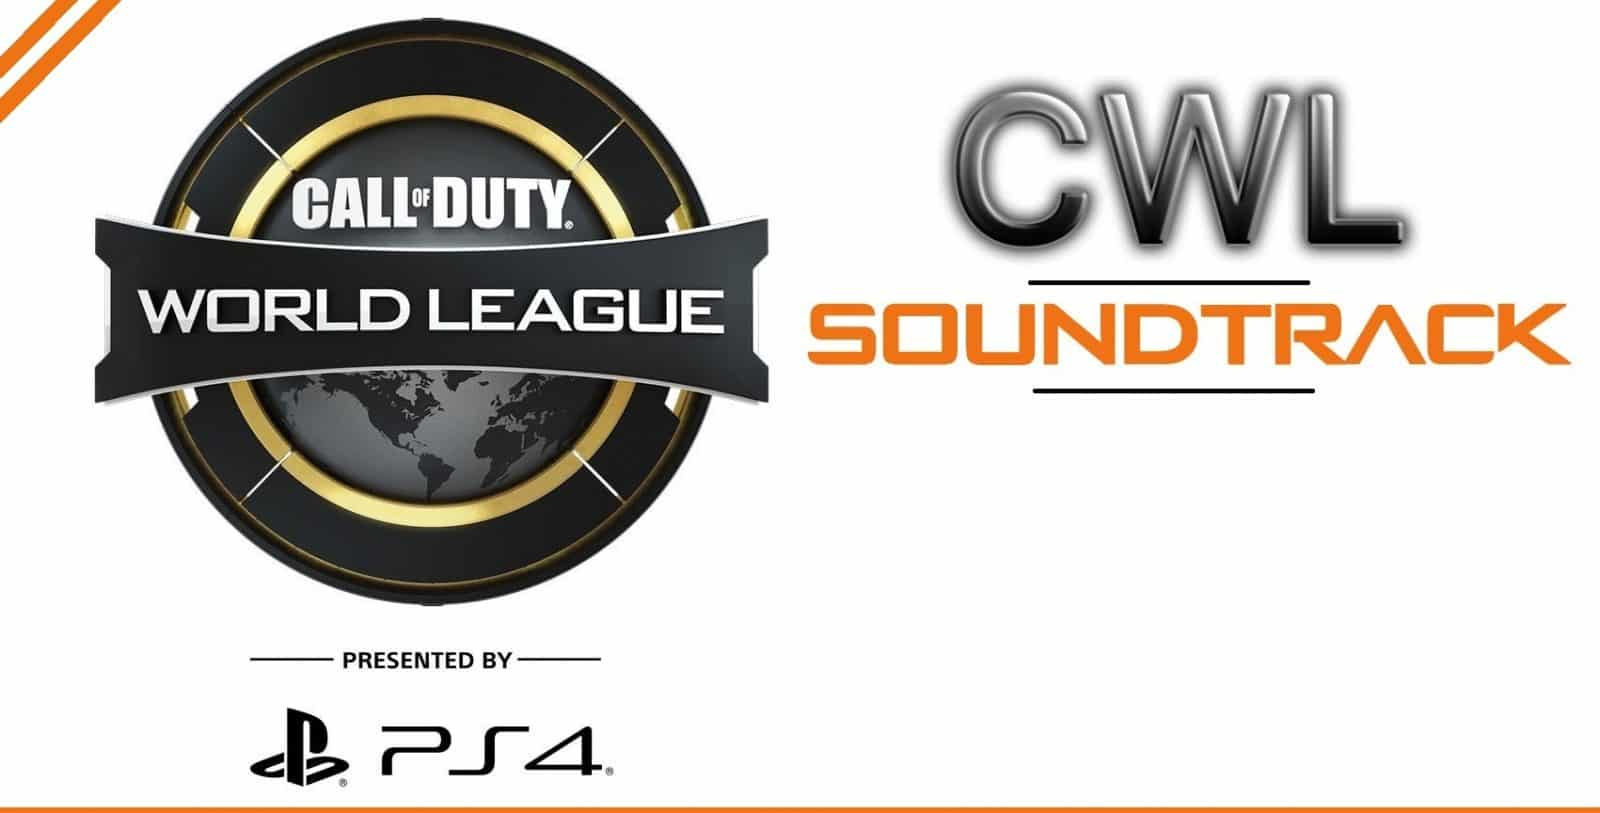 CWL Music Soundtrack OST Twitch MLG Call of Duty World League Tournament Event Championship Optic Gaming